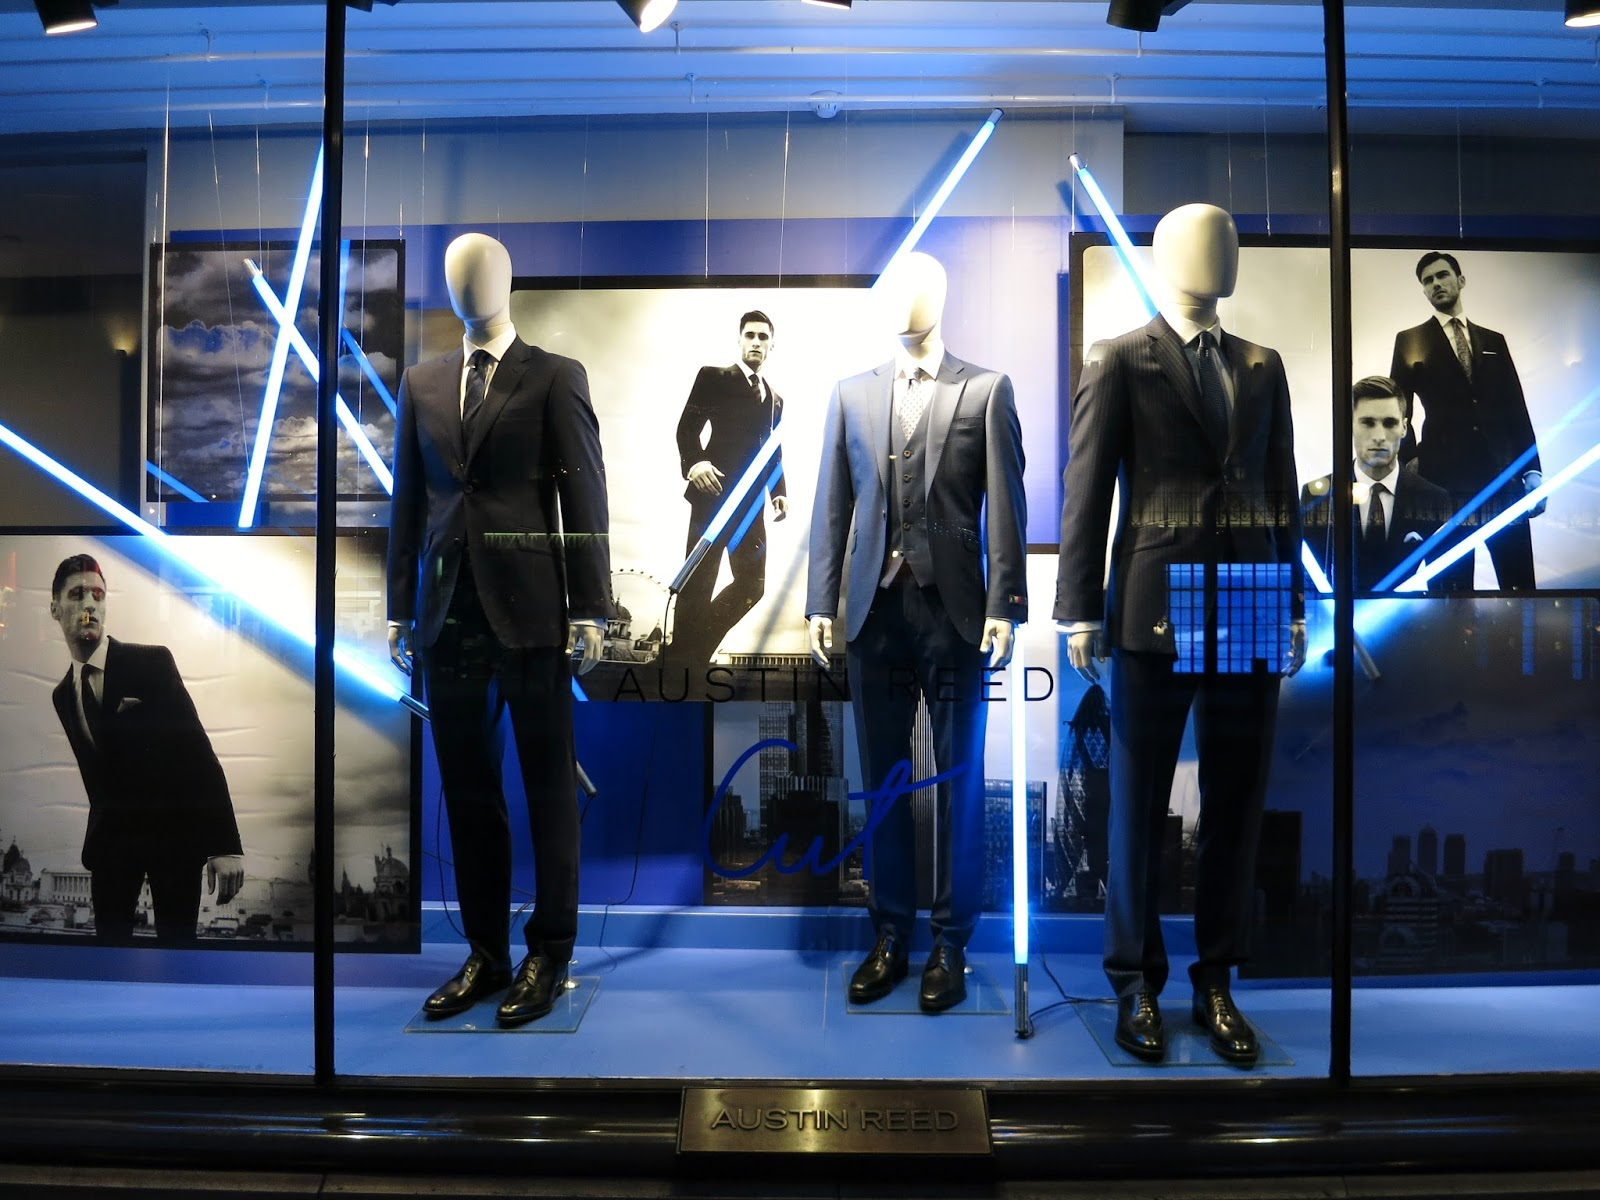 Retailstorewindows Austin Reed London